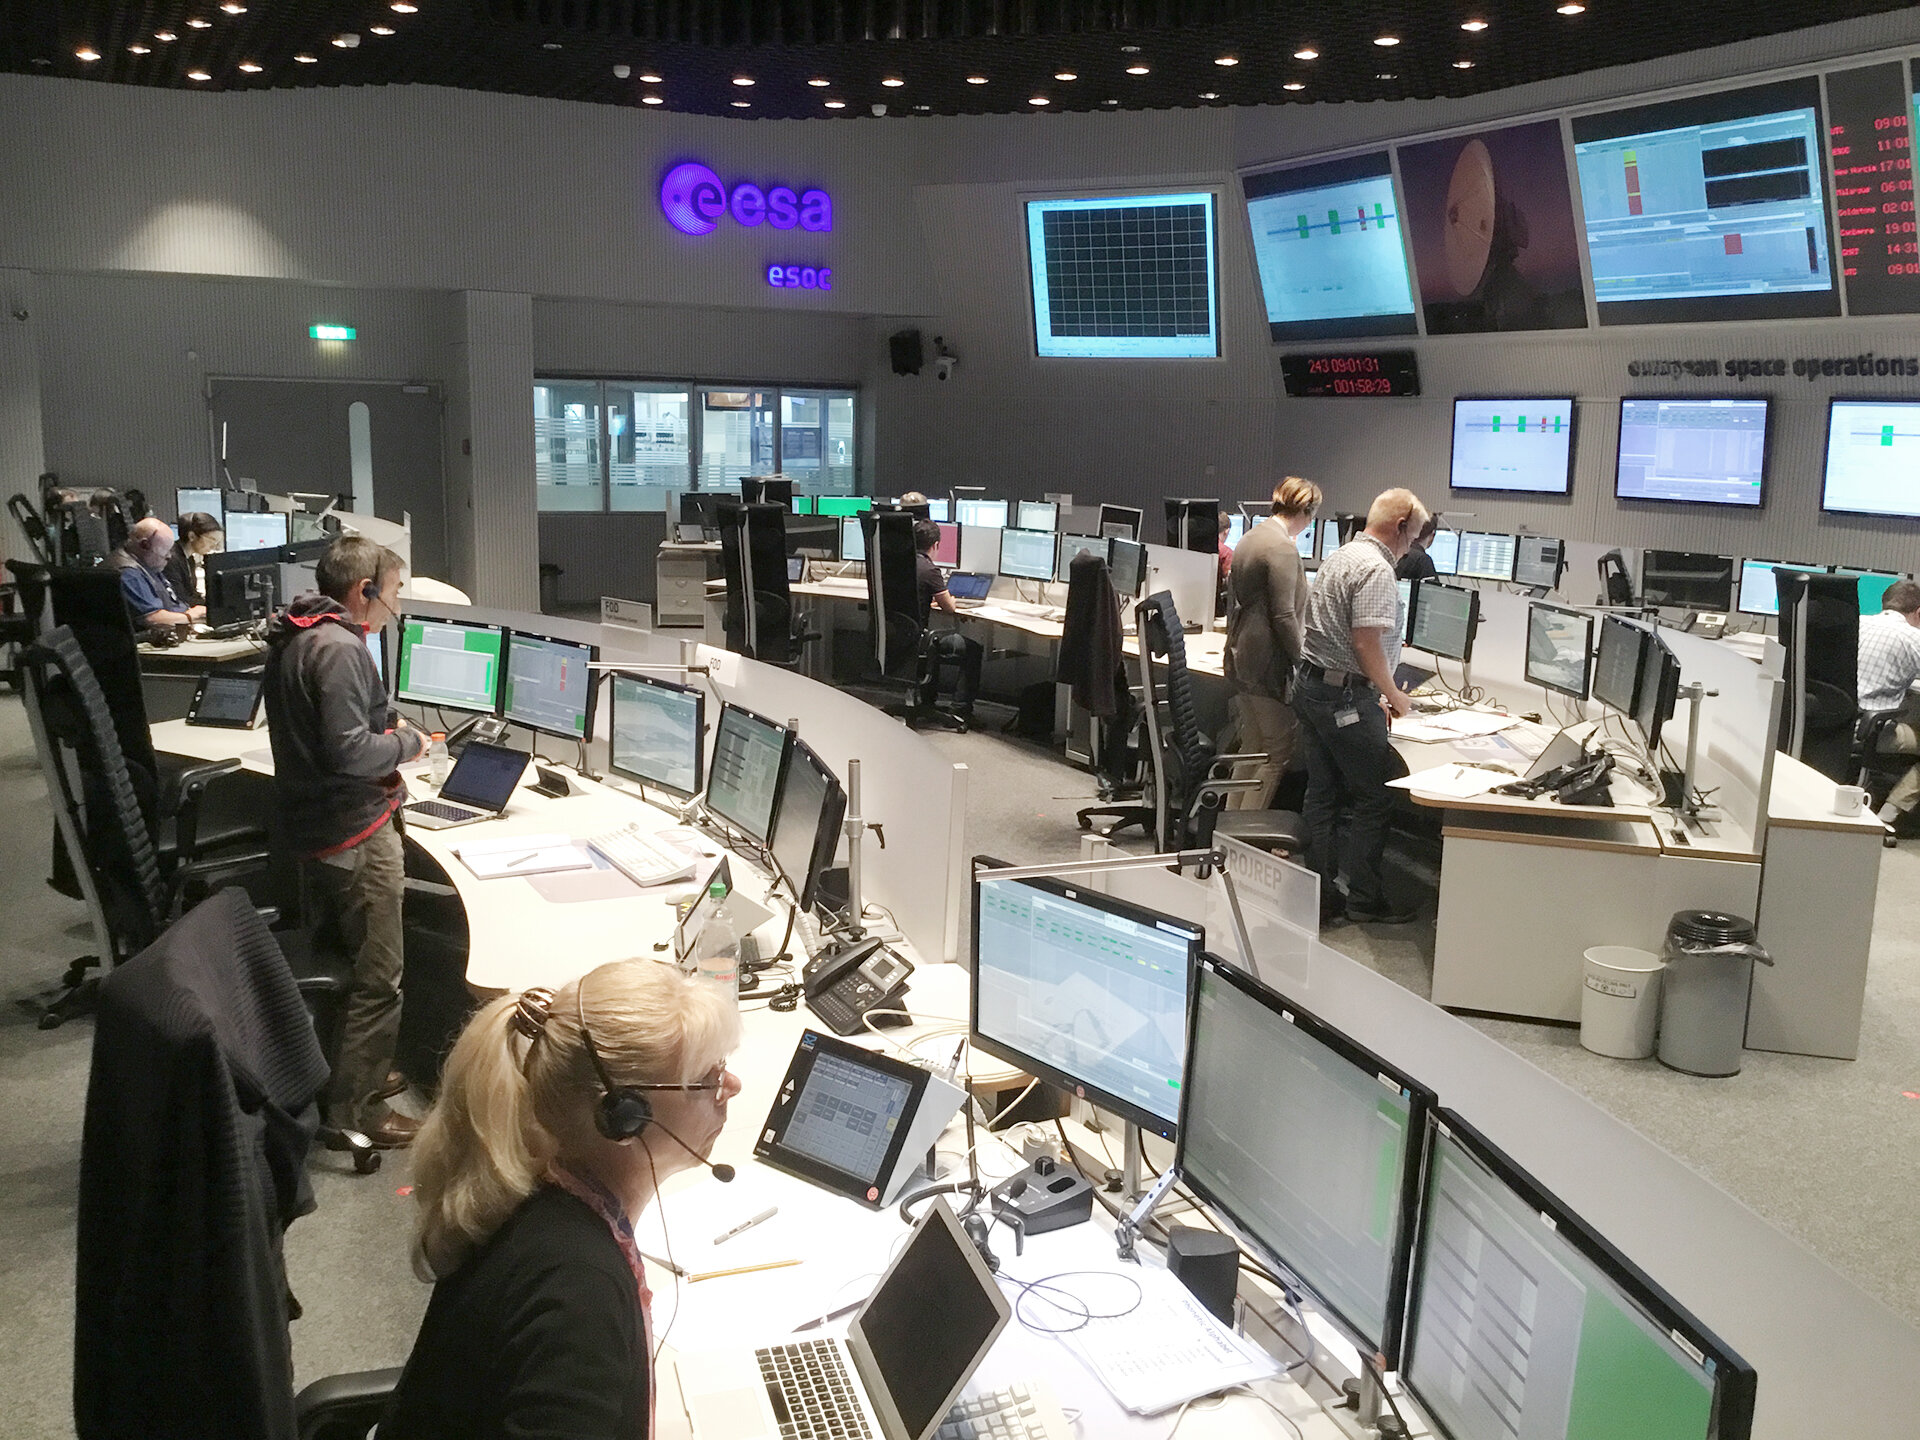 ExoMars mission control trains for arriving at the Red Planet